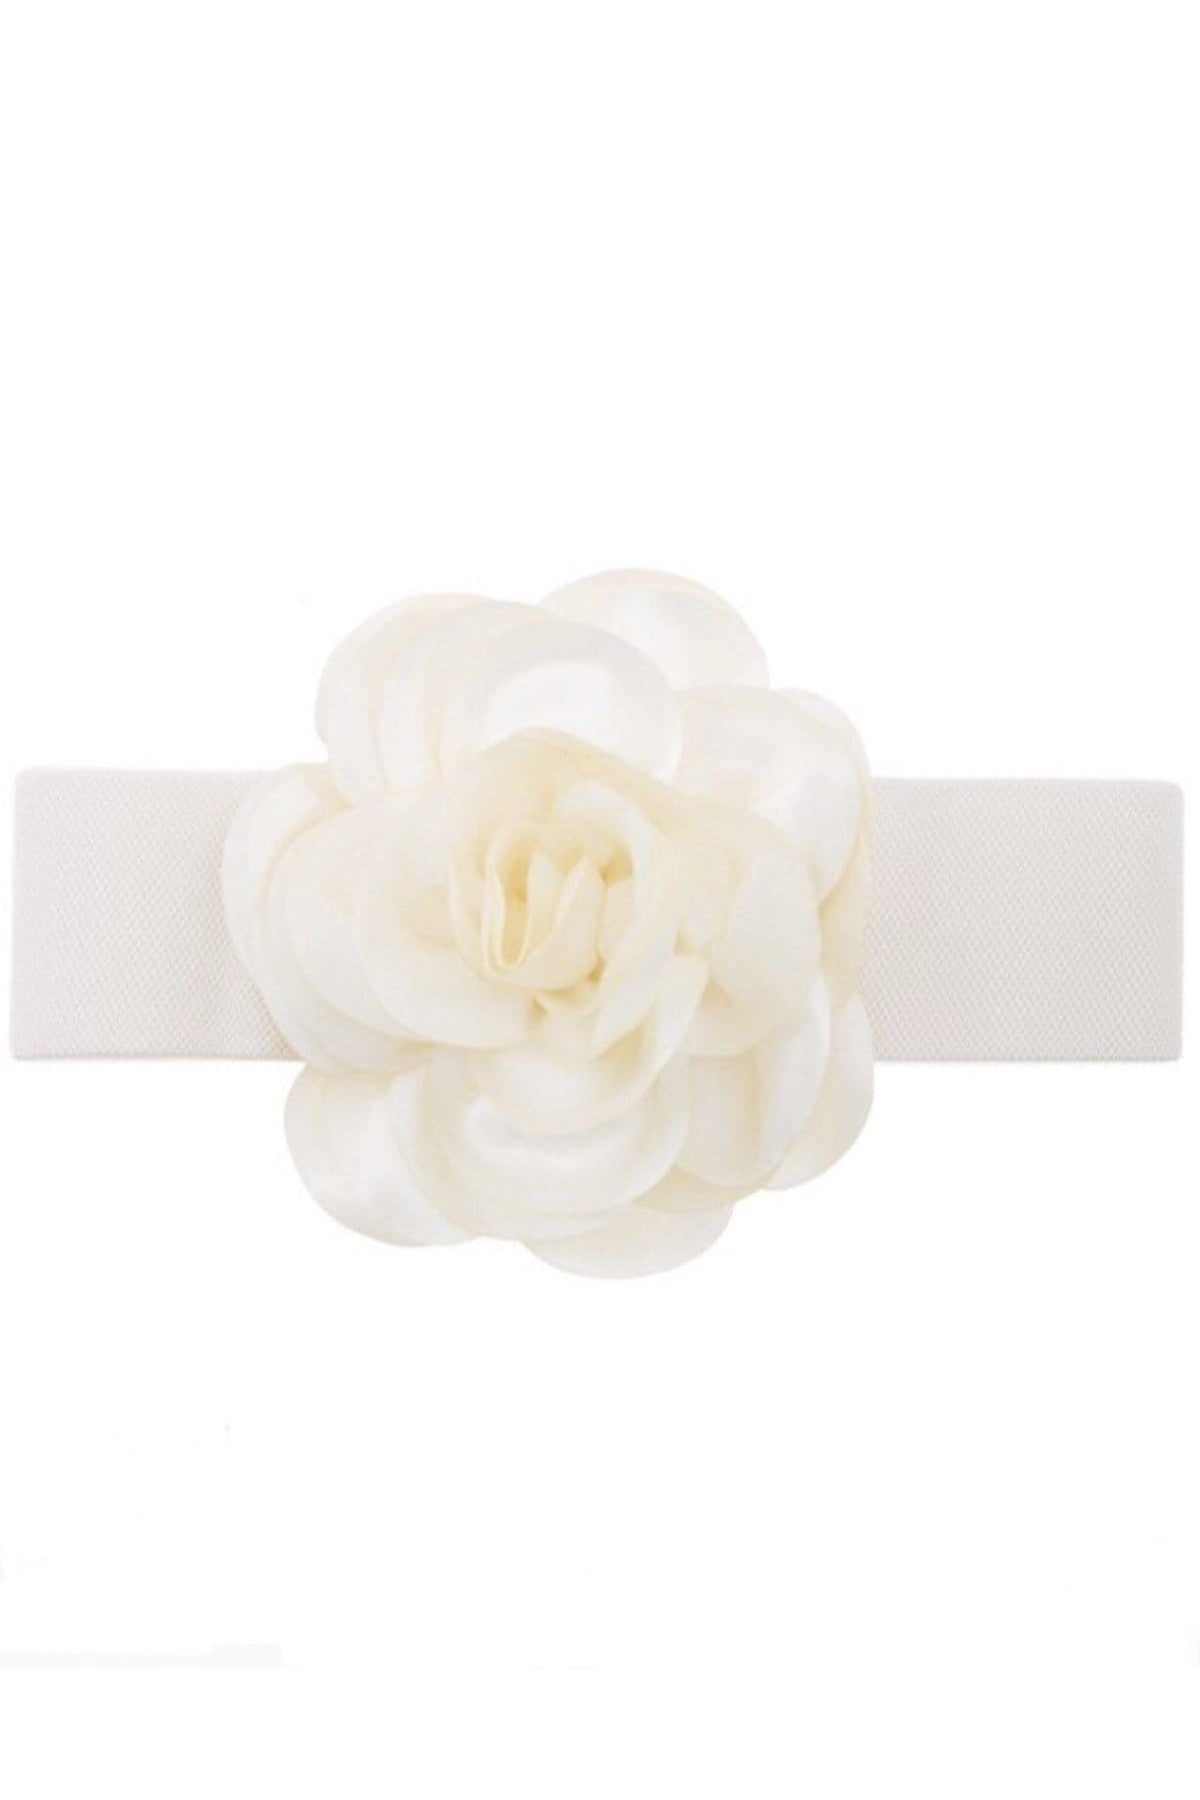 BELT Chiffon Flower Belt Ivory - Chloe Dao